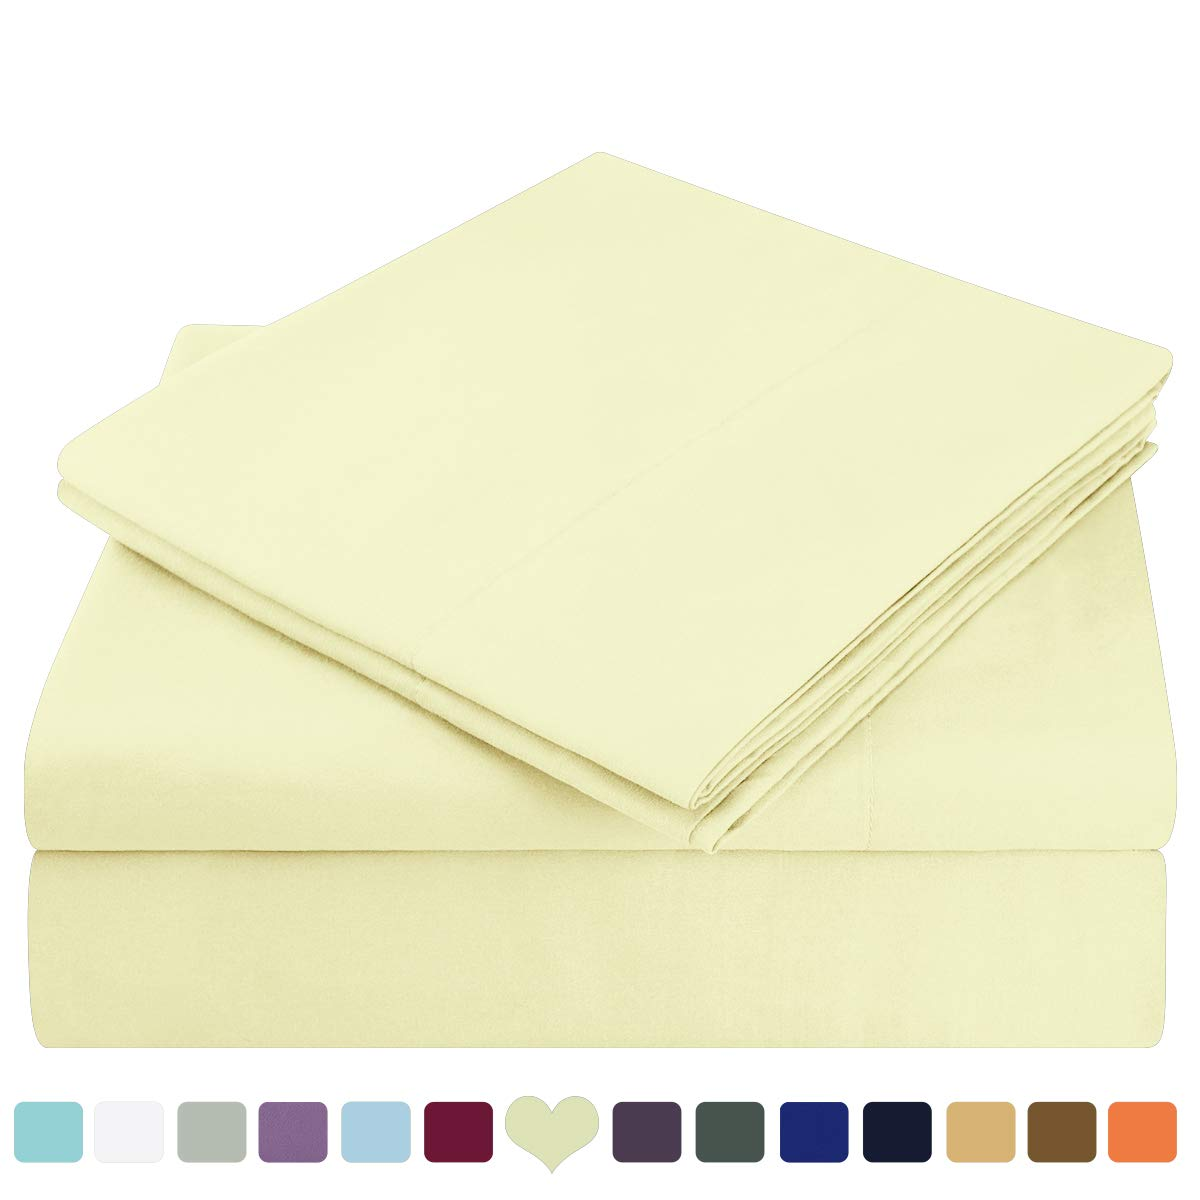 HOMEIDEAS Bed Sheets Set Extra Soft Brushed Microfiber 1800 Bedding Sheets - Deep Pocket, Hypoallergenic, Wrinkle & Fade Free - 4 Piece(King,Pale Yellow)